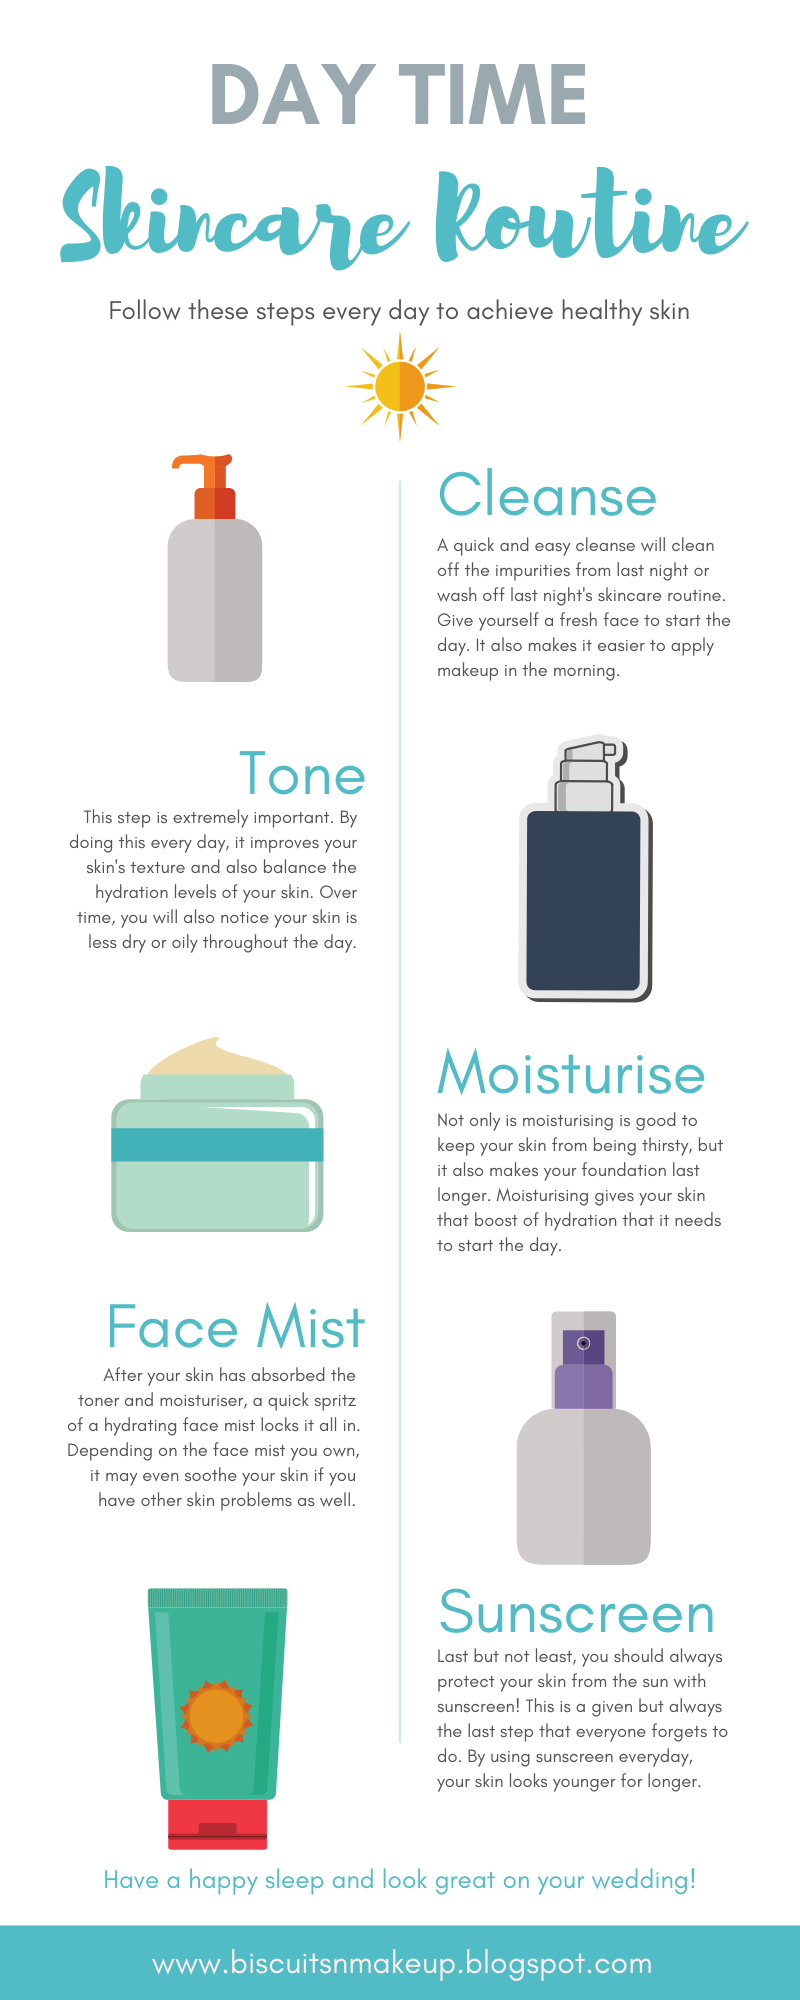 5 Easy Steps For Day Time Skincare Routine To Achieve Healthy Skin Night Skin Care Routine Skin Care Skin Care Routine